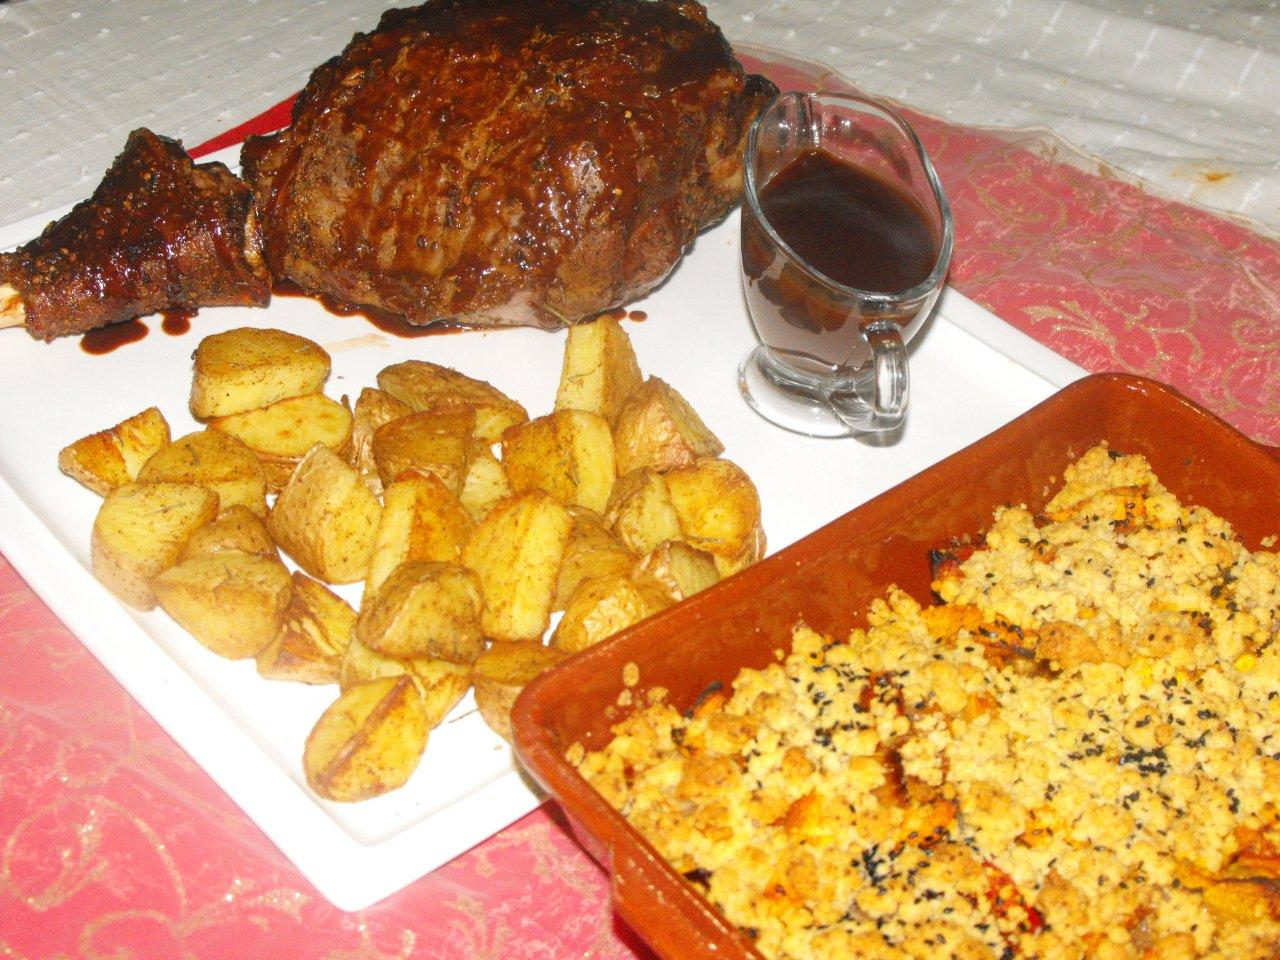 Chocolate laced spicy lamb served with cumin and garlic veggie crumble and roast potatoes by Becky Pace Bayona